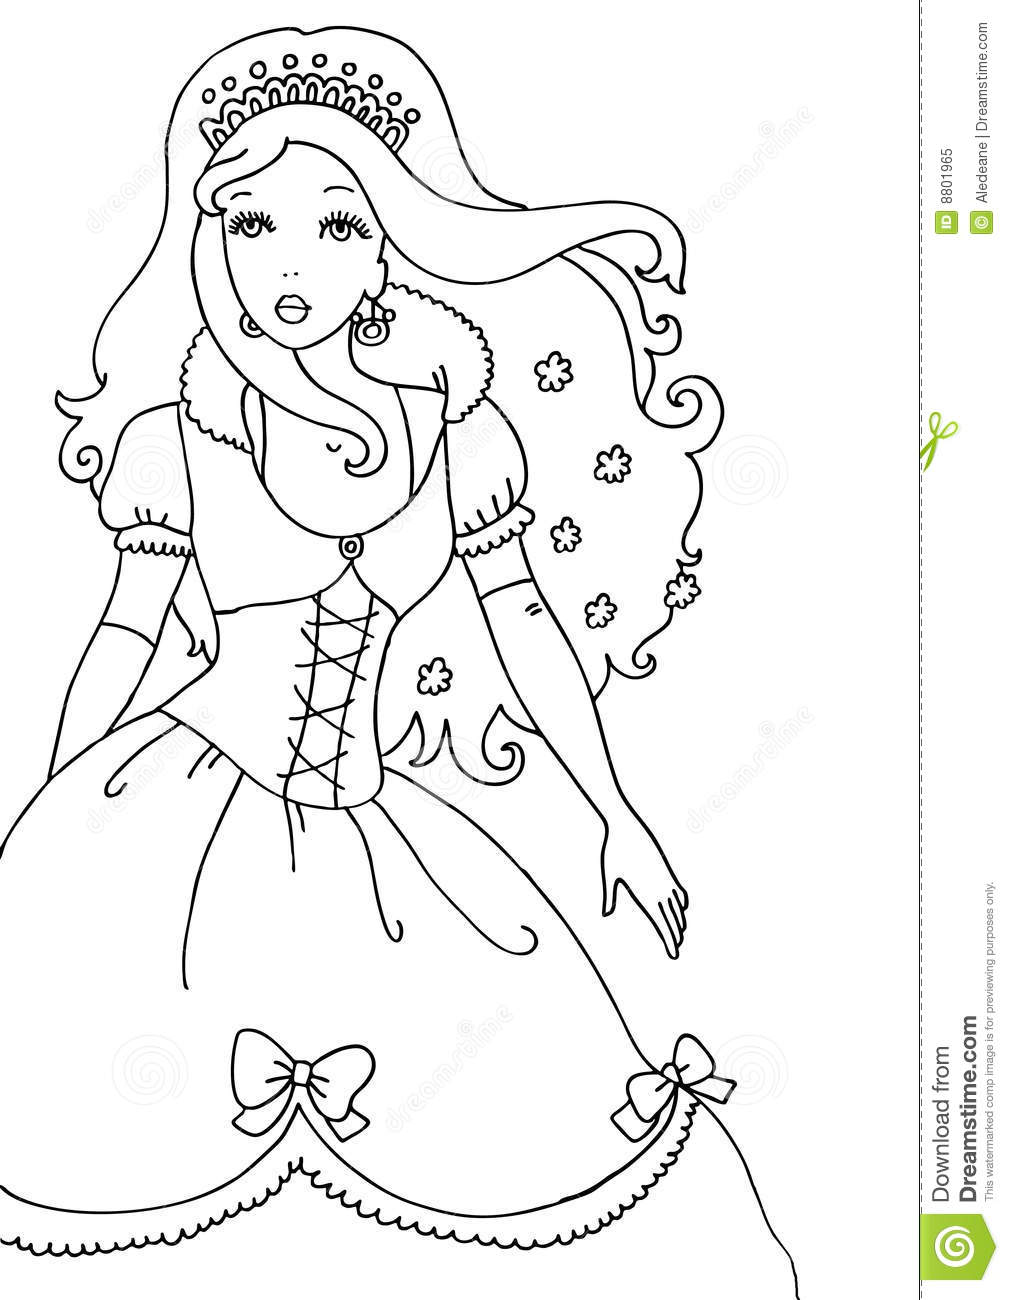 little princess coloring coloring page for little princesses princess coloring little